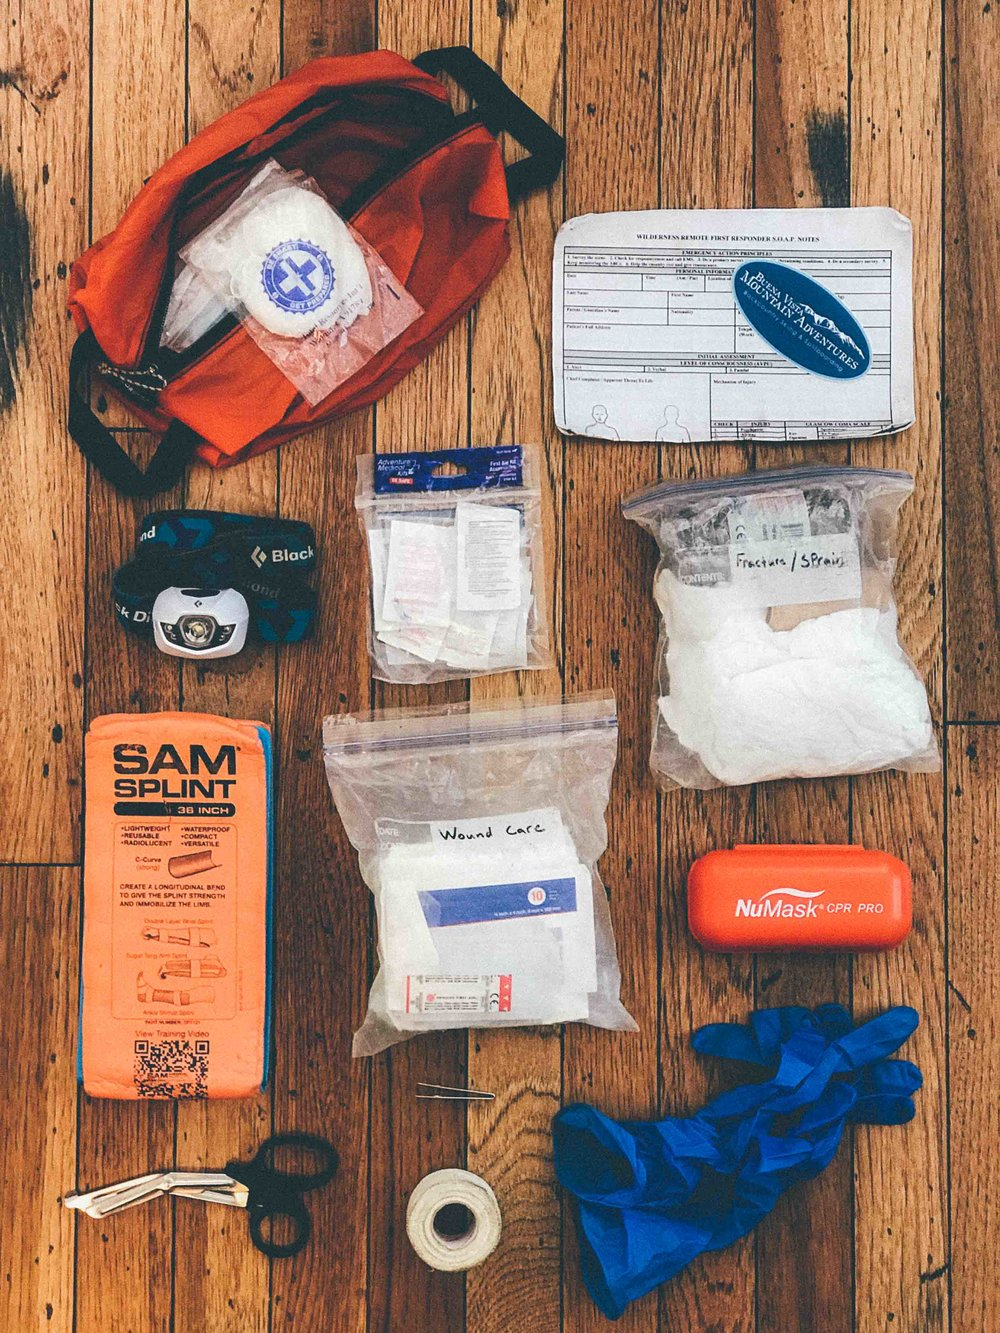 First Aid Kit - I am continually taking note if I used anything out of my first aid kit that may need to be replaced or restocked.I also, think about what kind of emergencies I might be dealing with each tour; every outing can pose different threatsI also consider how long I will be out in the field